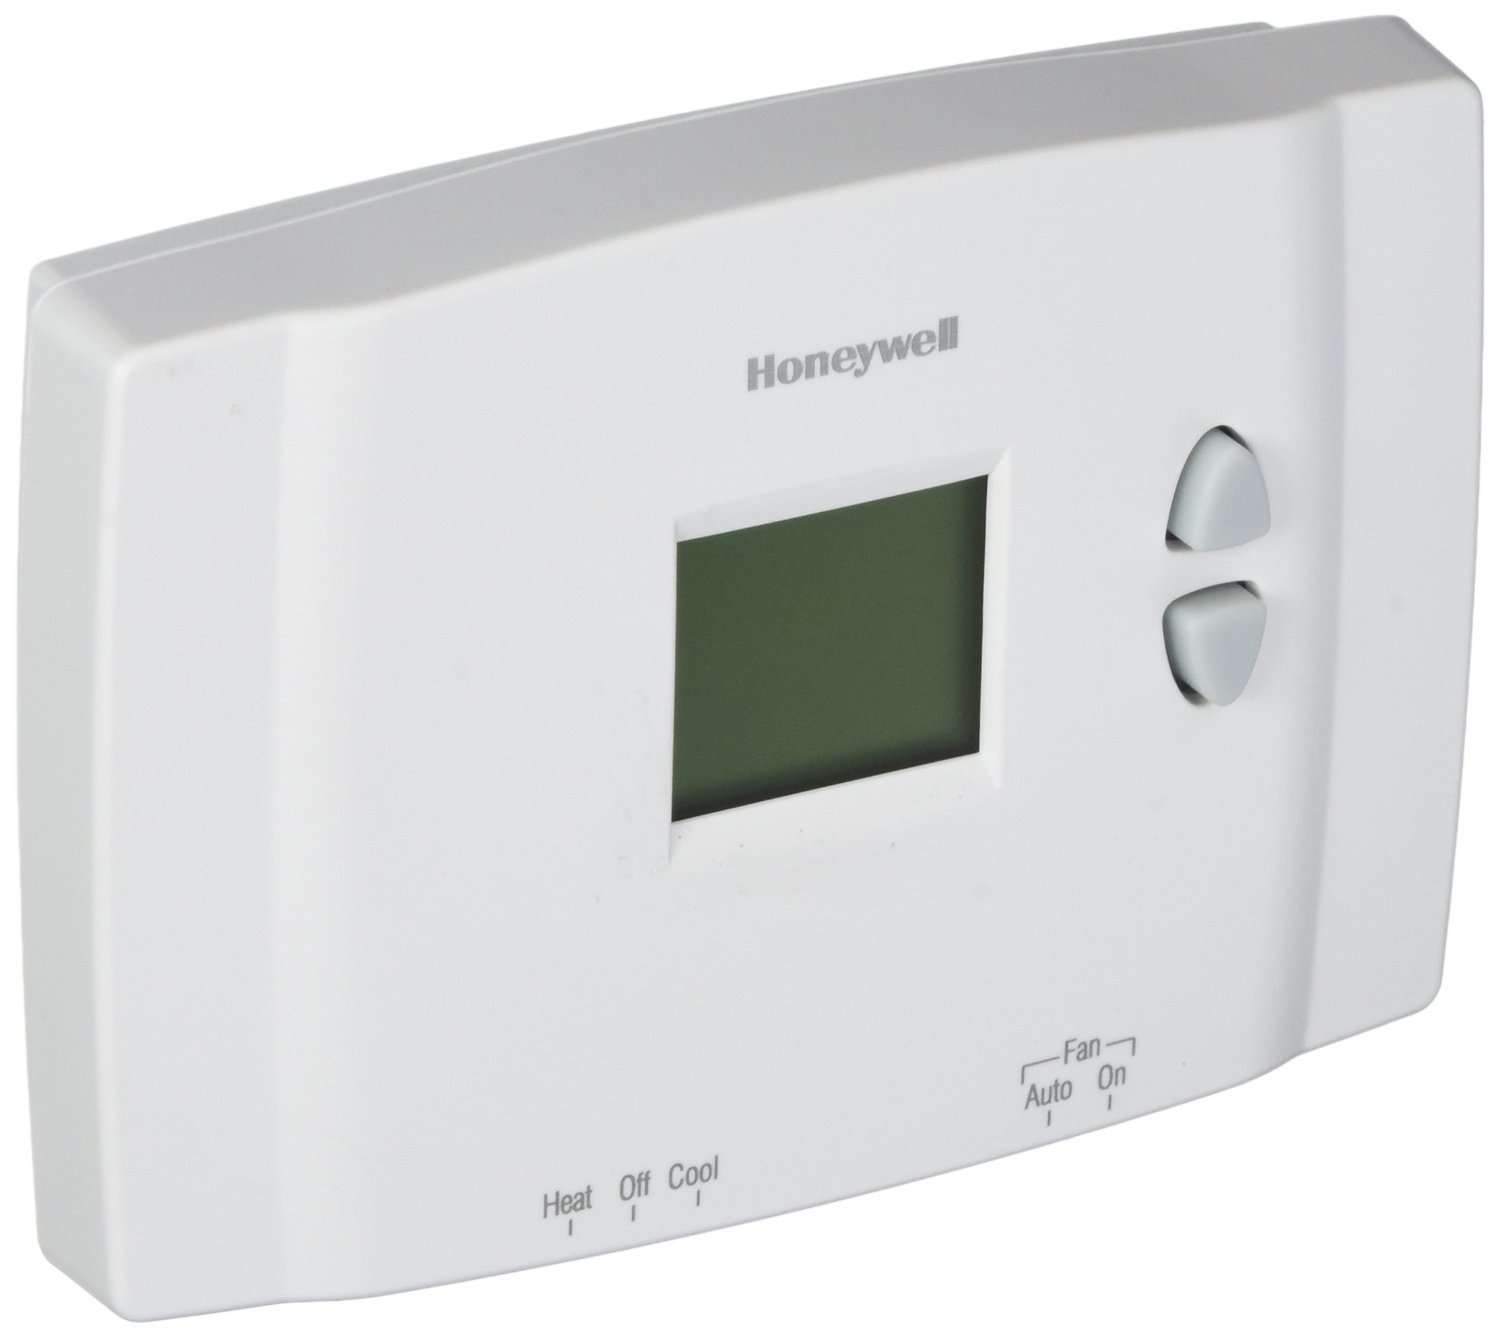 wiring diagram for honeywell non programmable thermostat sony xplod cd player different types of thermostats which do you